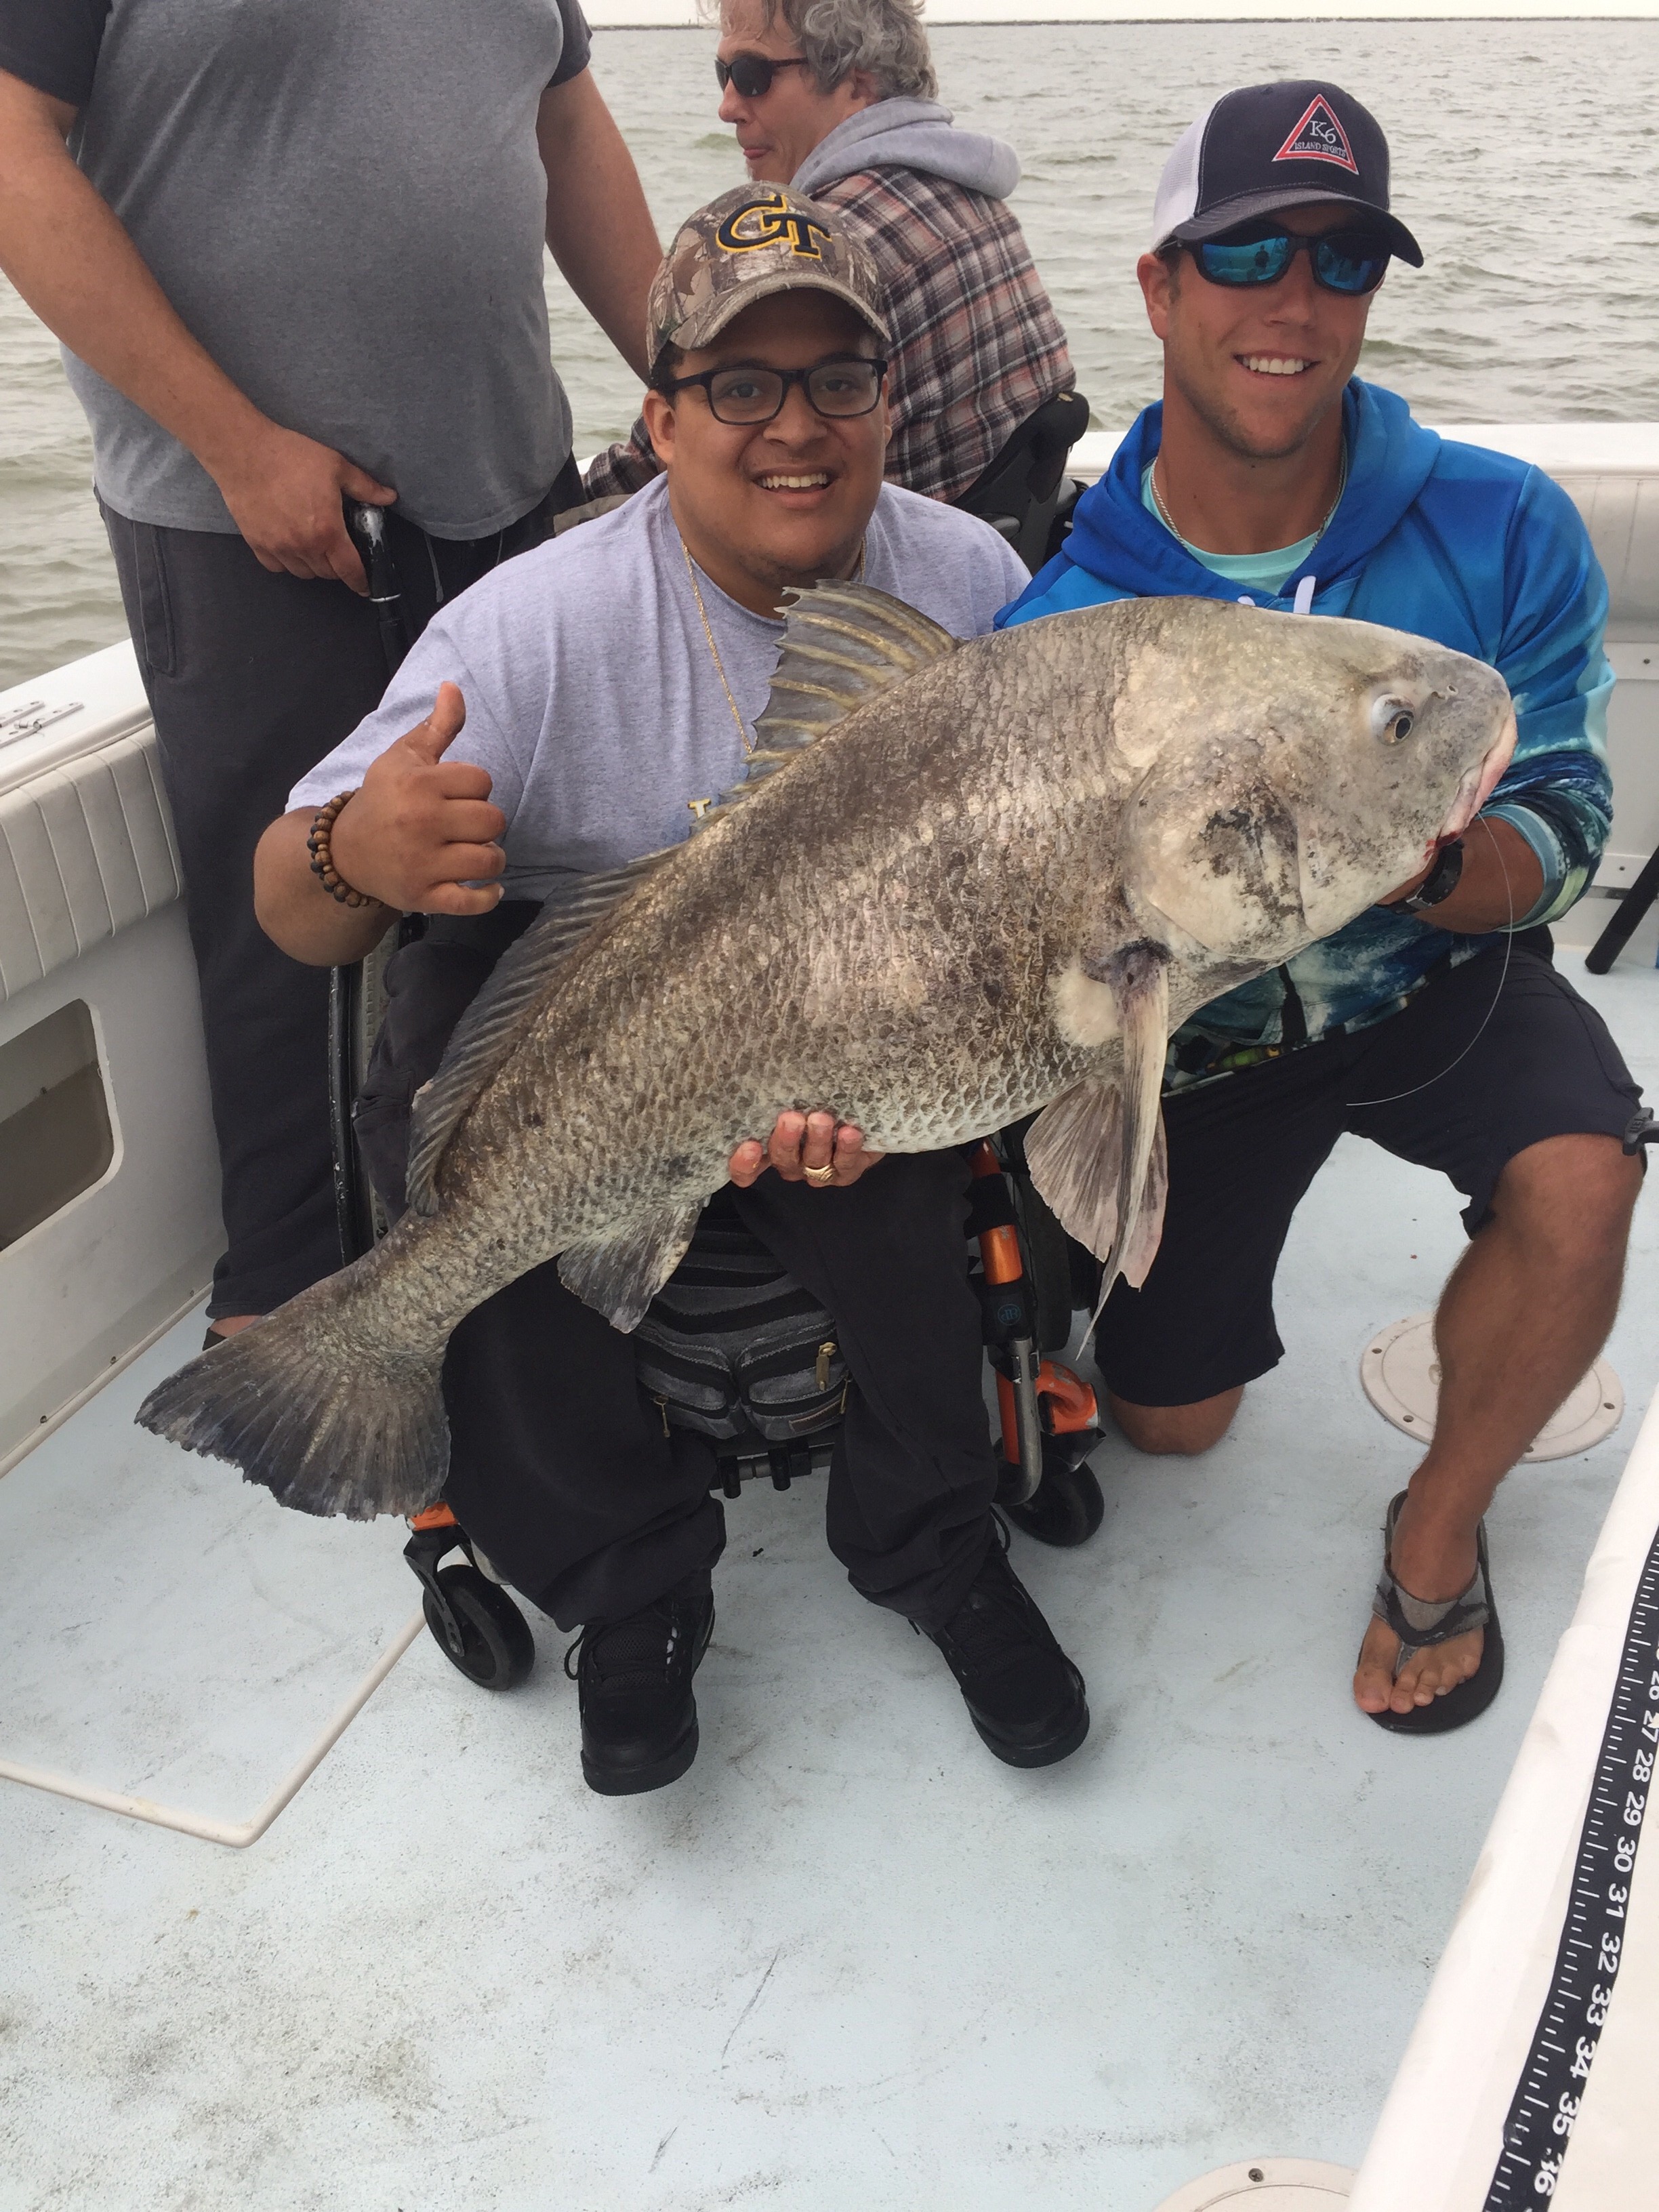 Three fishermen in Galveston, Texas Black Drum catch